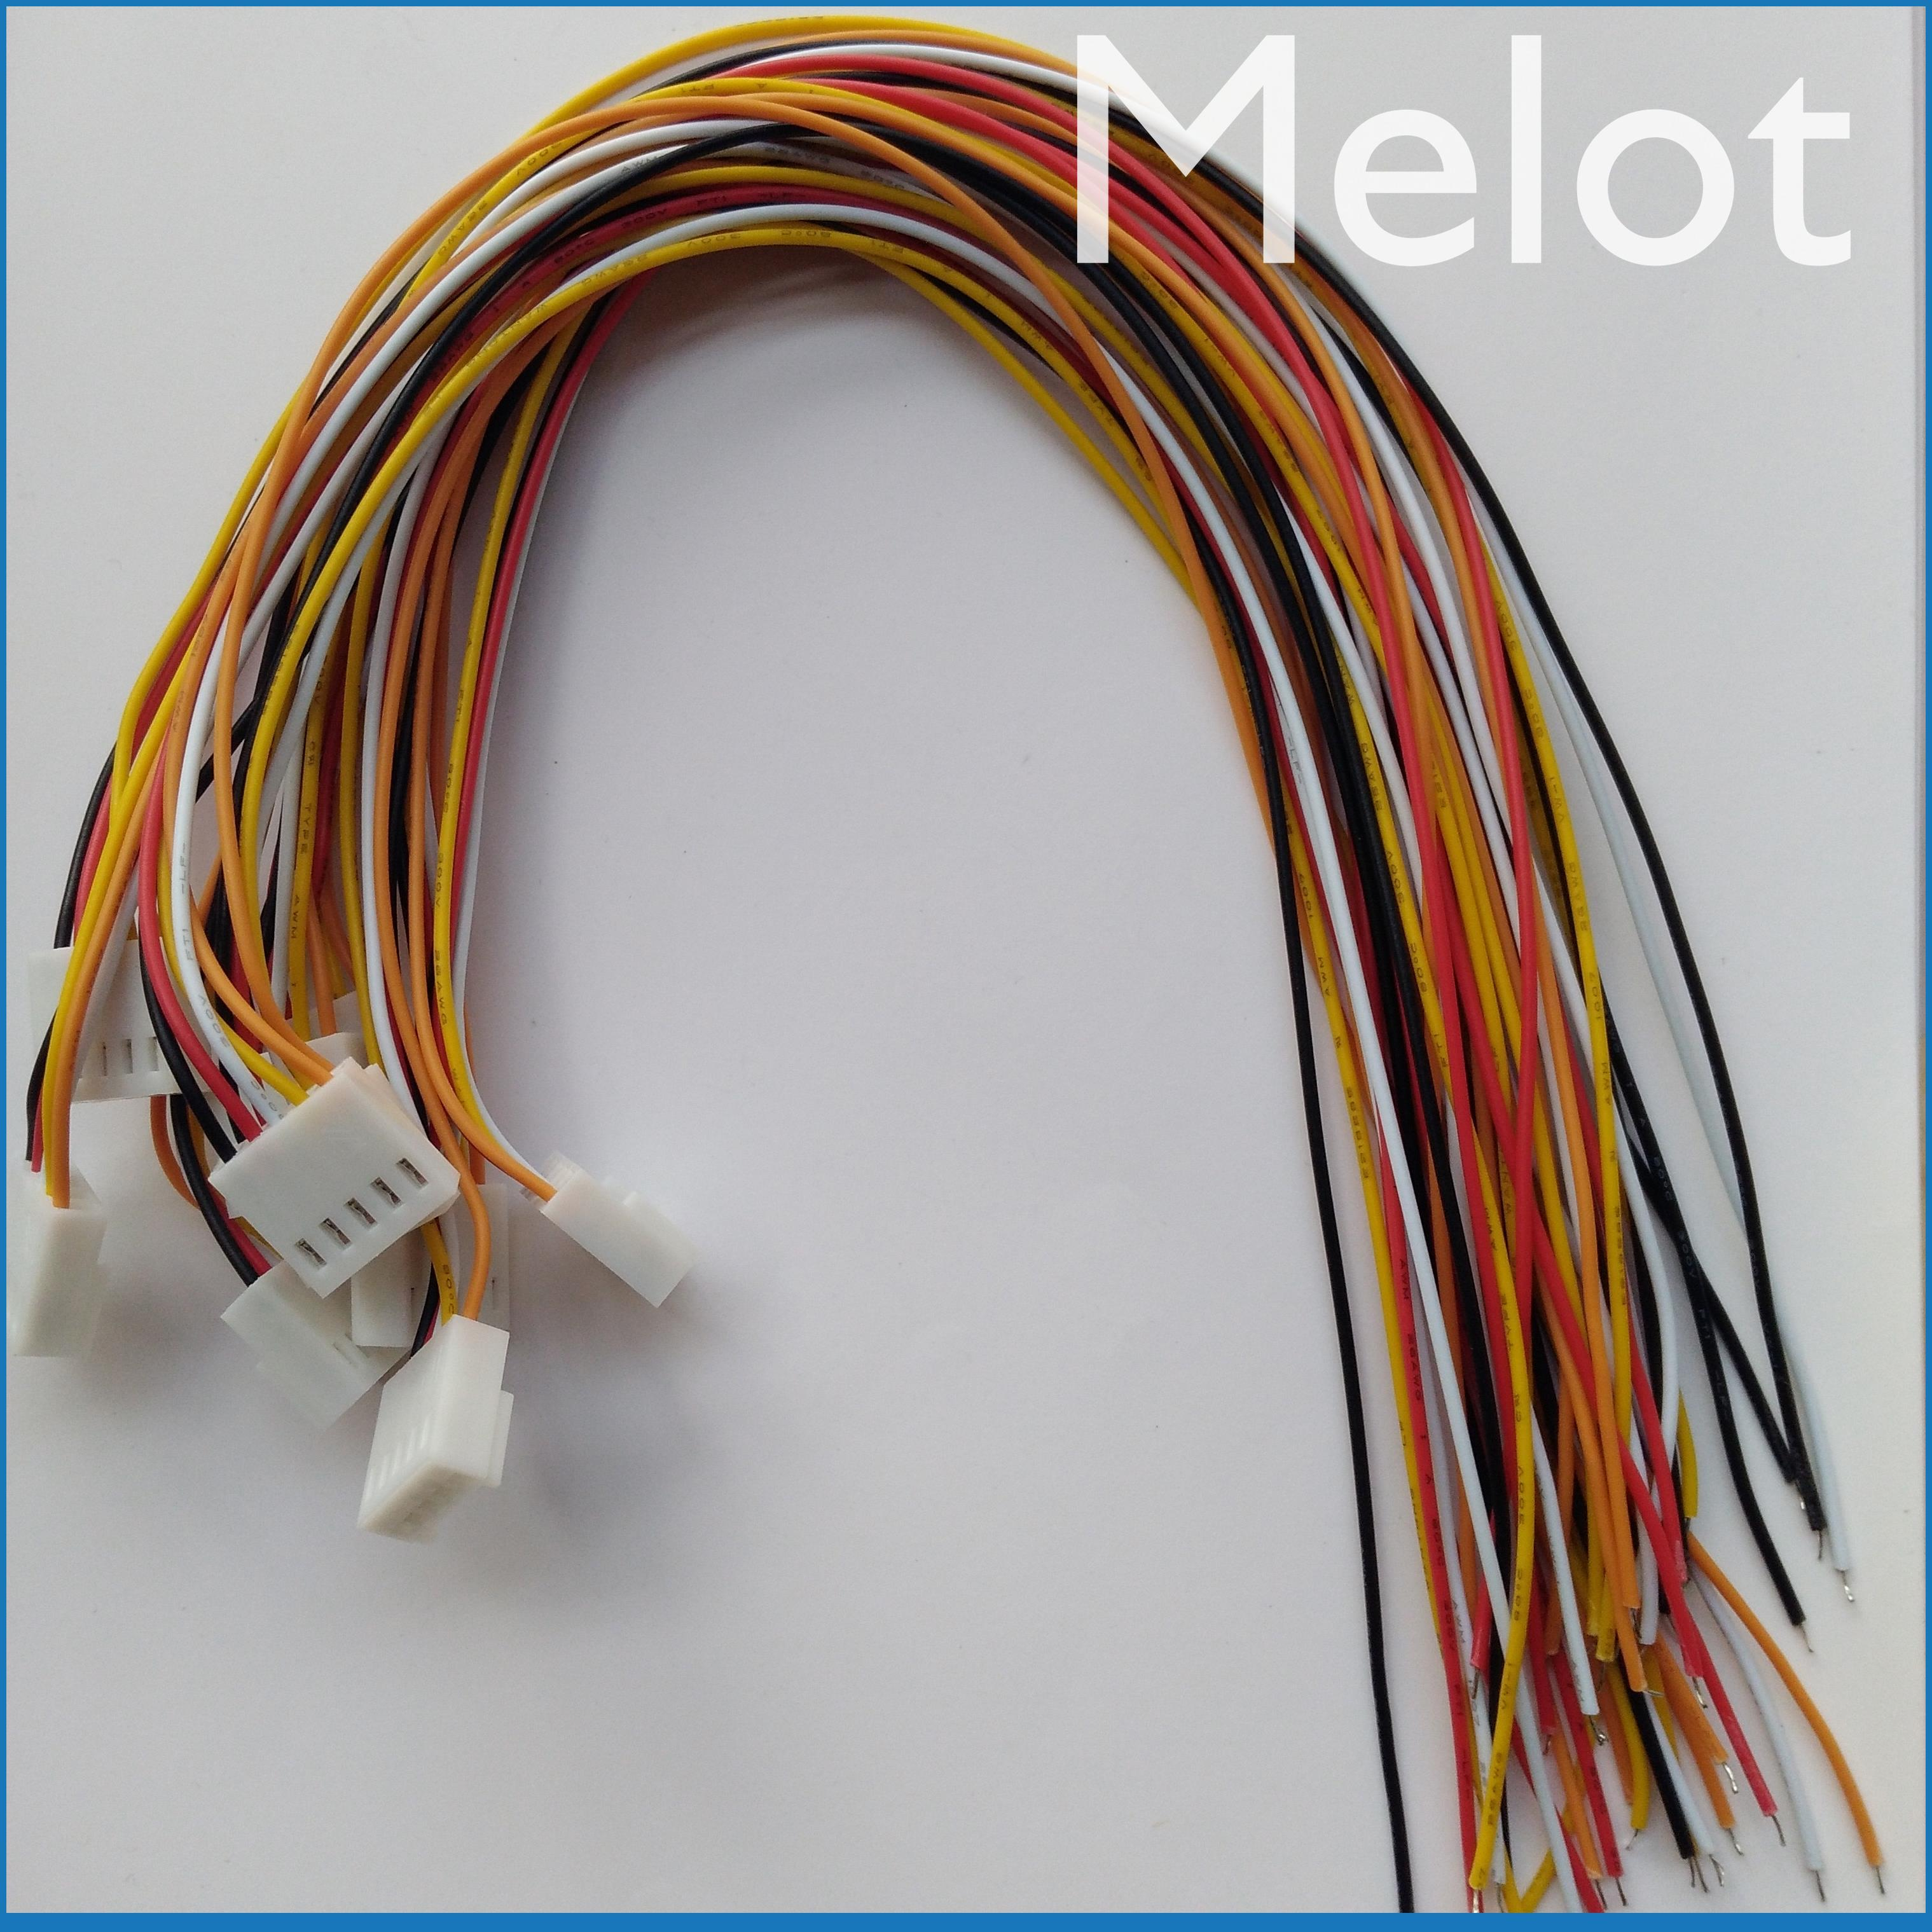 200 Pcs 2510 2.54mm Pitch 5 Pin Female Connector with 26AWG 300mm Leads Cable